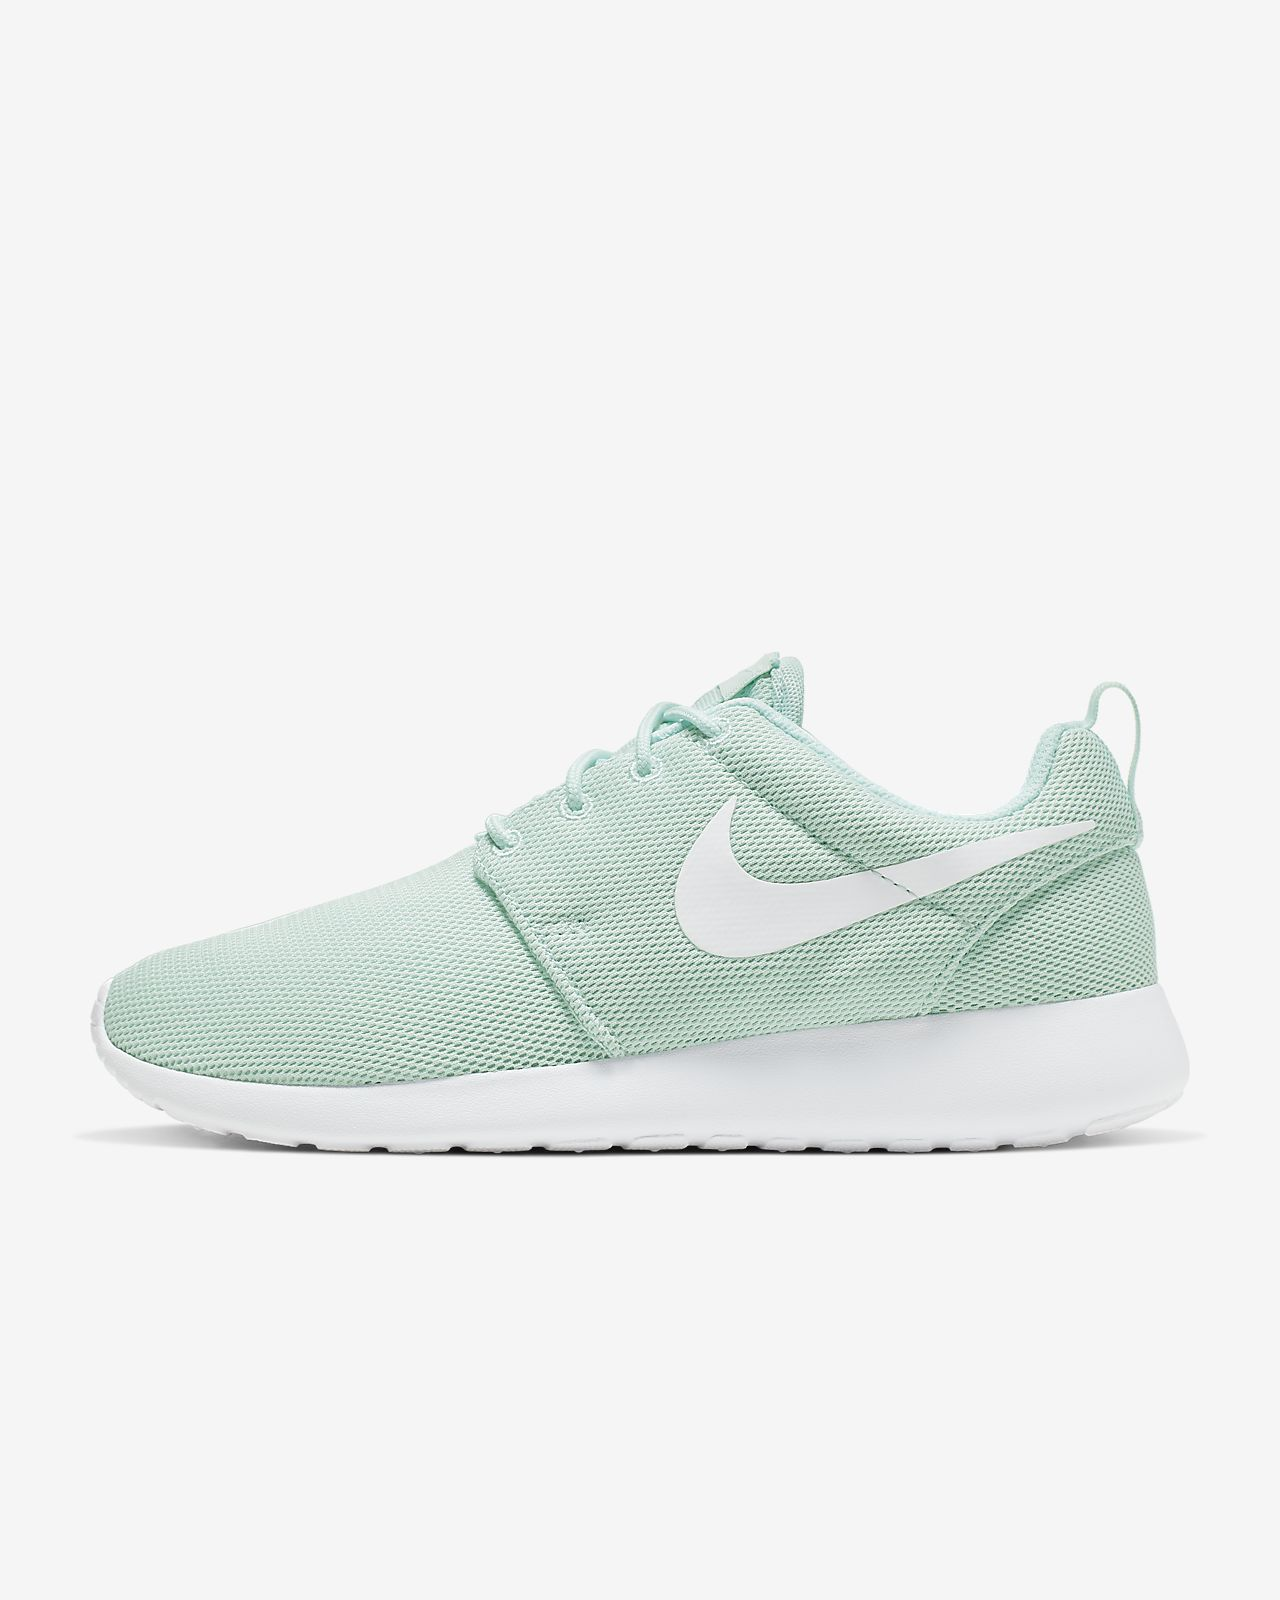 premium selection cc3cf b323b ... Nike Roshe One Women s Shoe